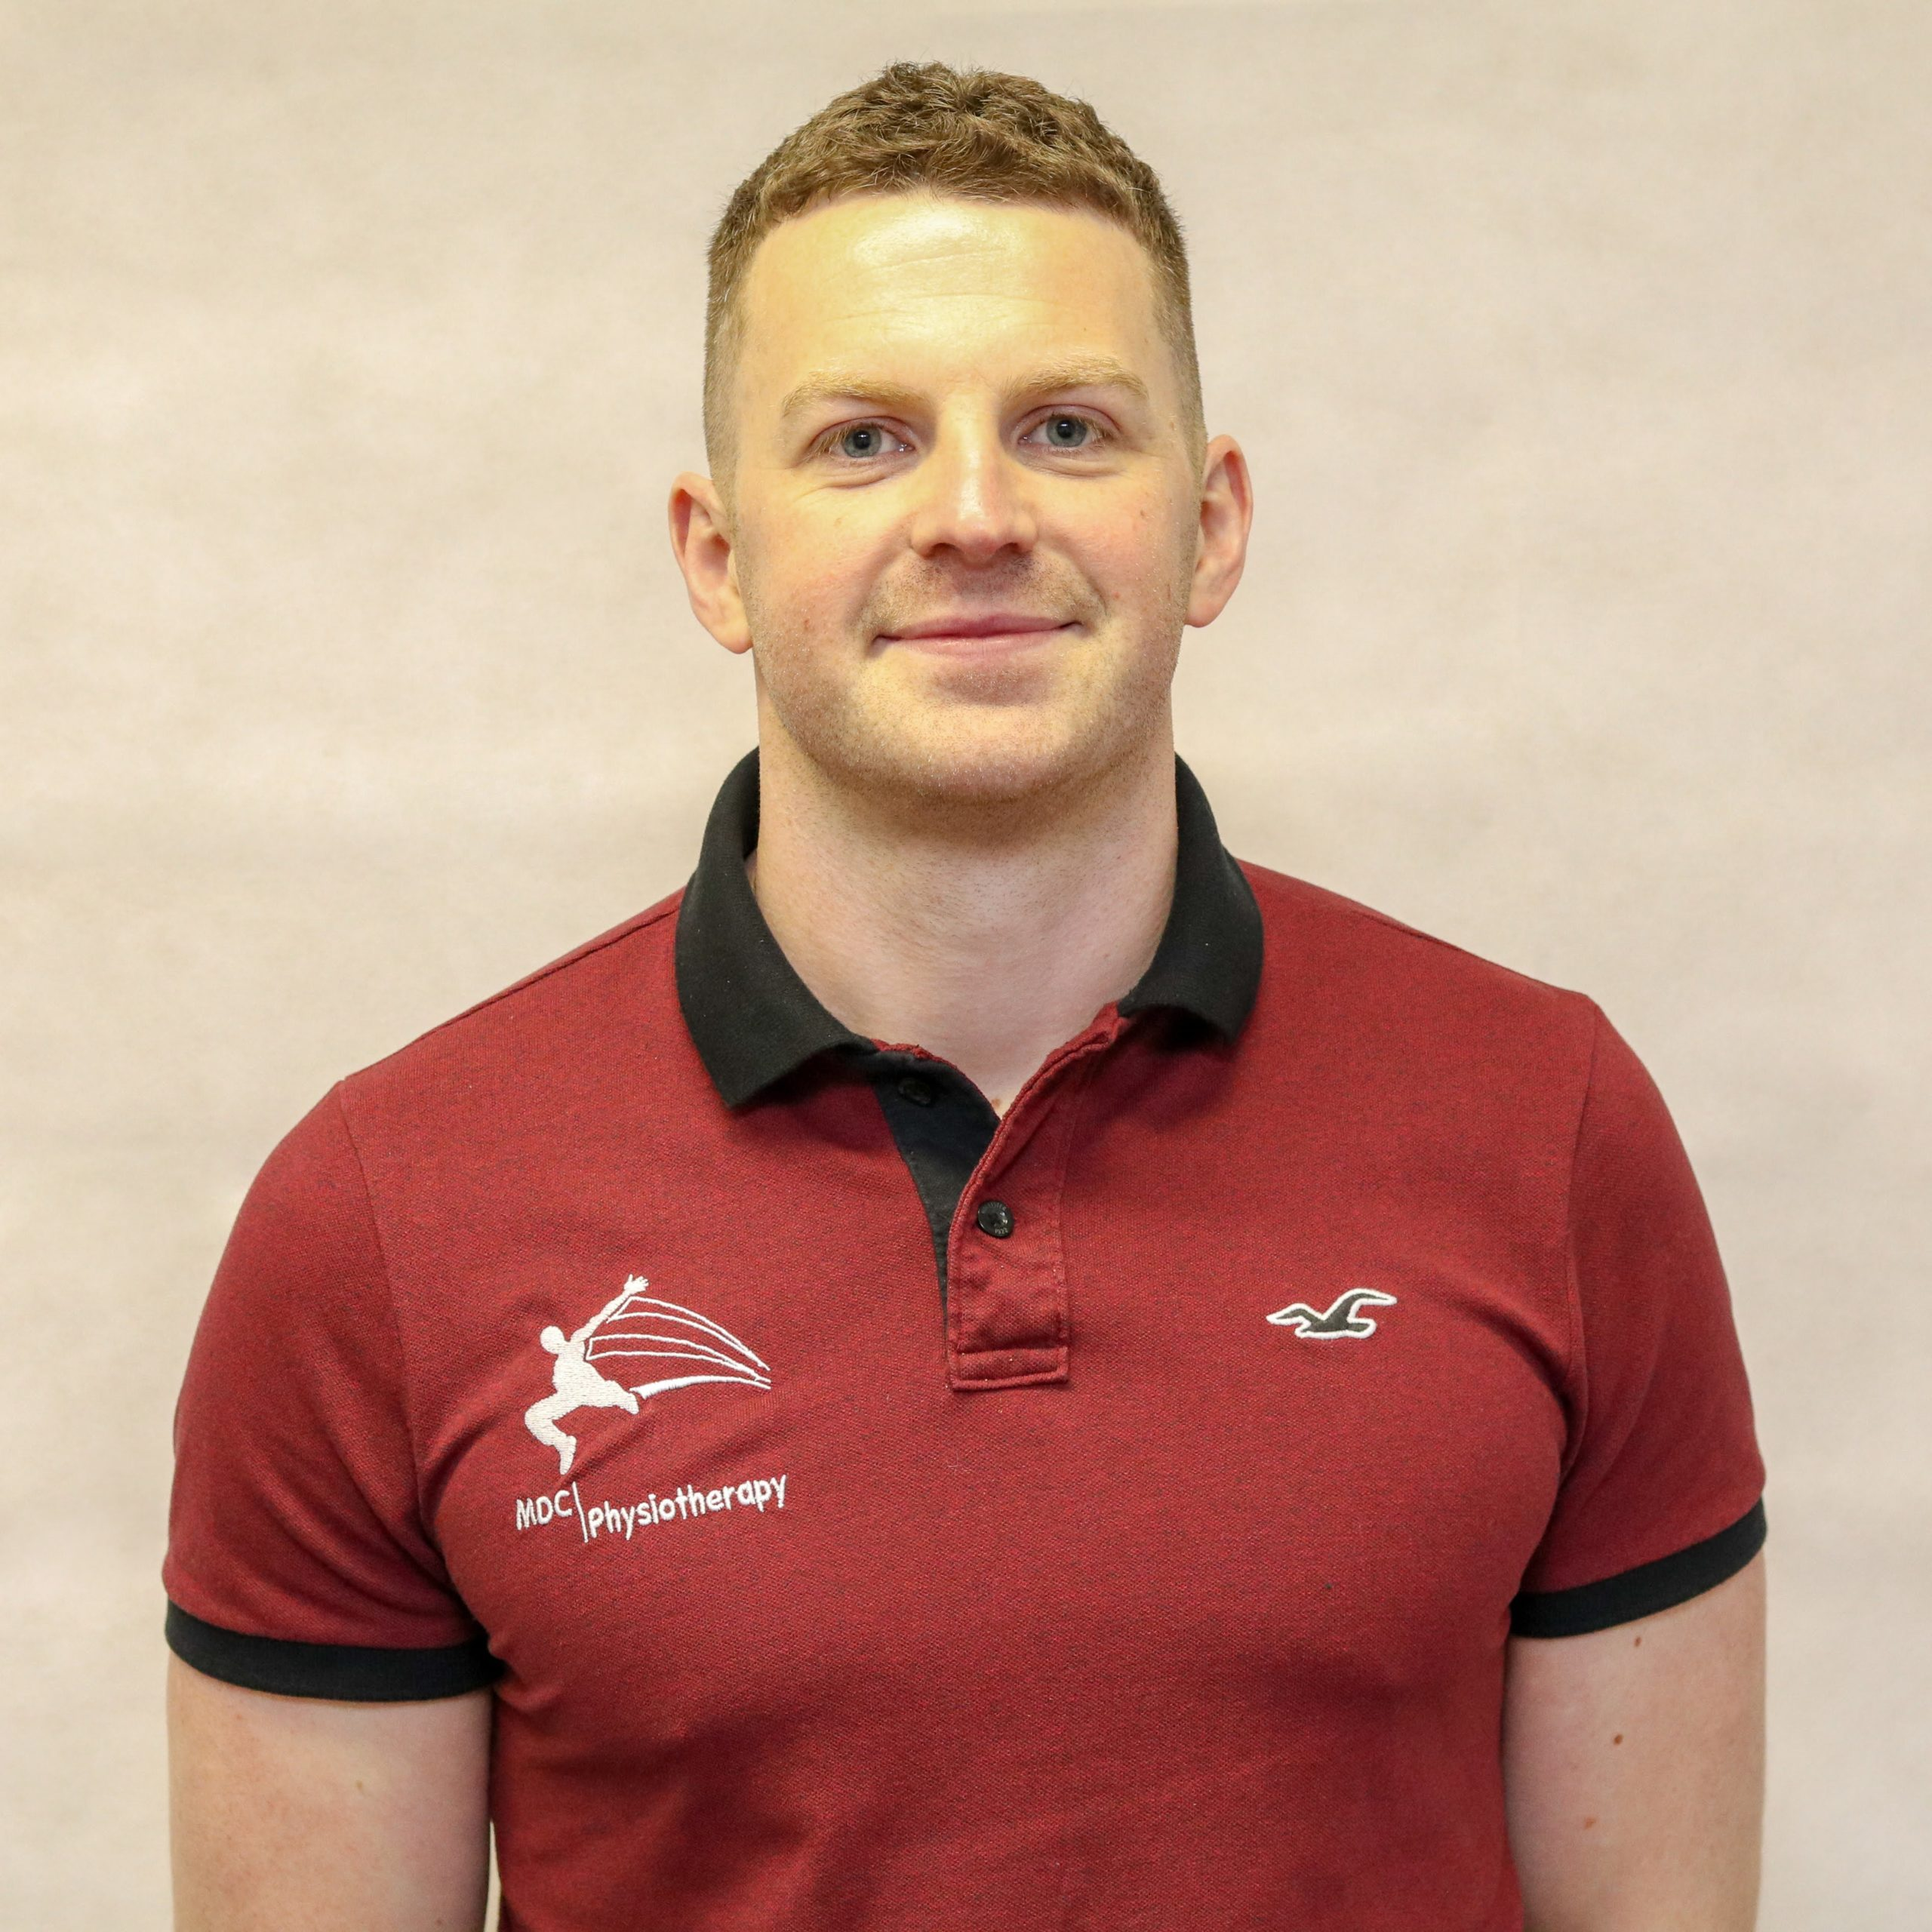 Mark Cornish – Owner/Director & Senior Physiotherapist. MISCP